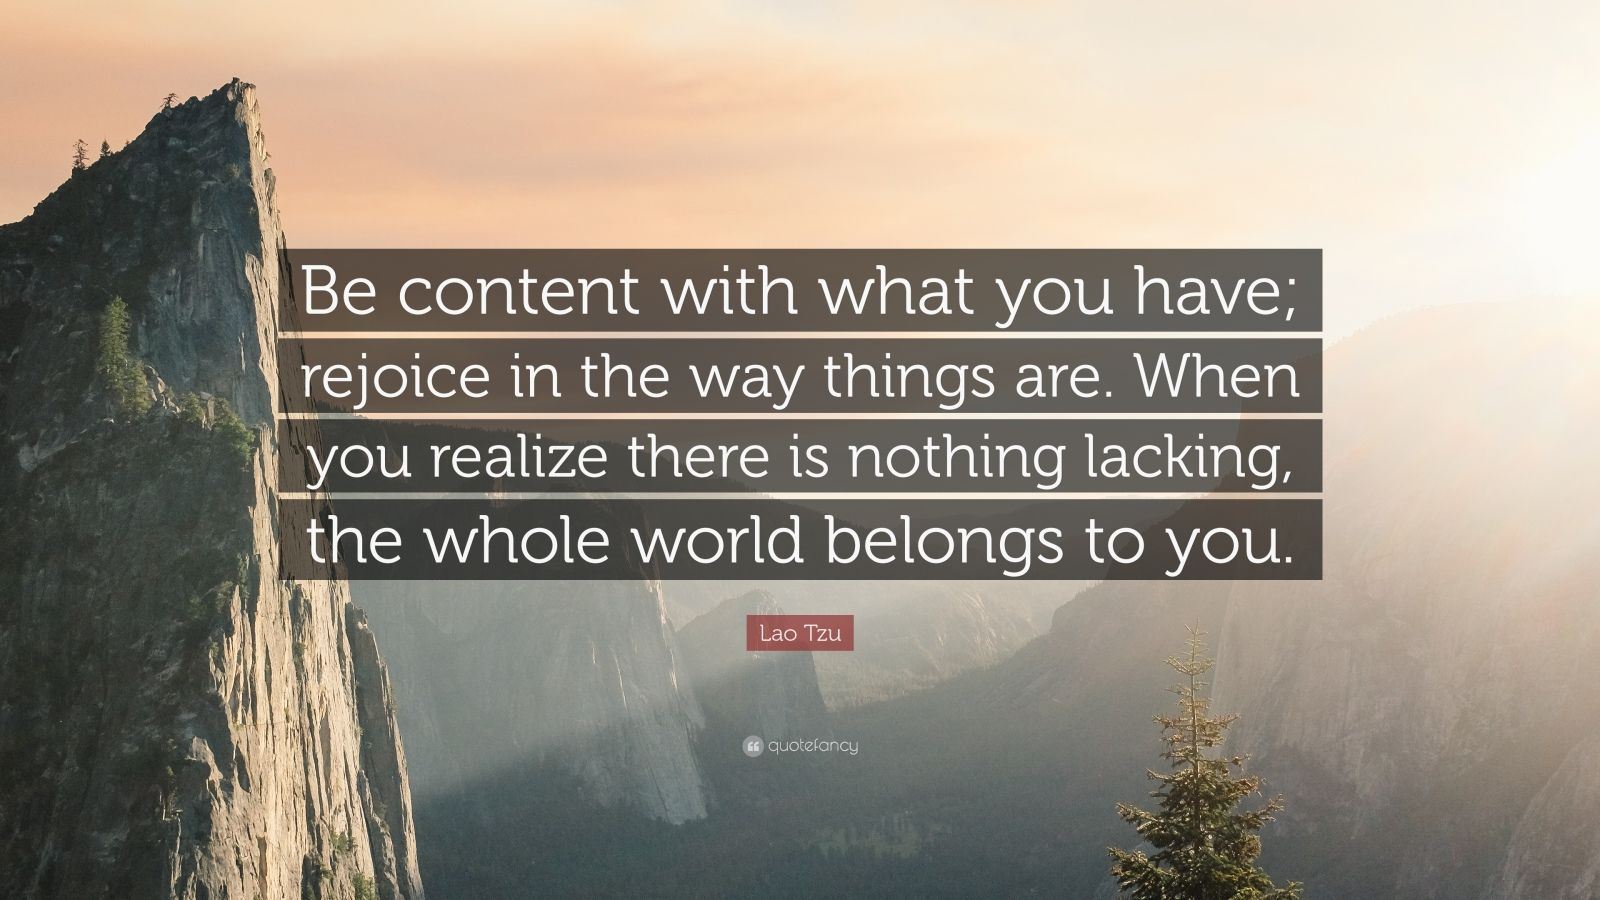 """Lao Tzu Quote: """"Be content with what you have; rejoice in the way things are. When you realize there is nothing lacking, the whole world belongs to you."""""""